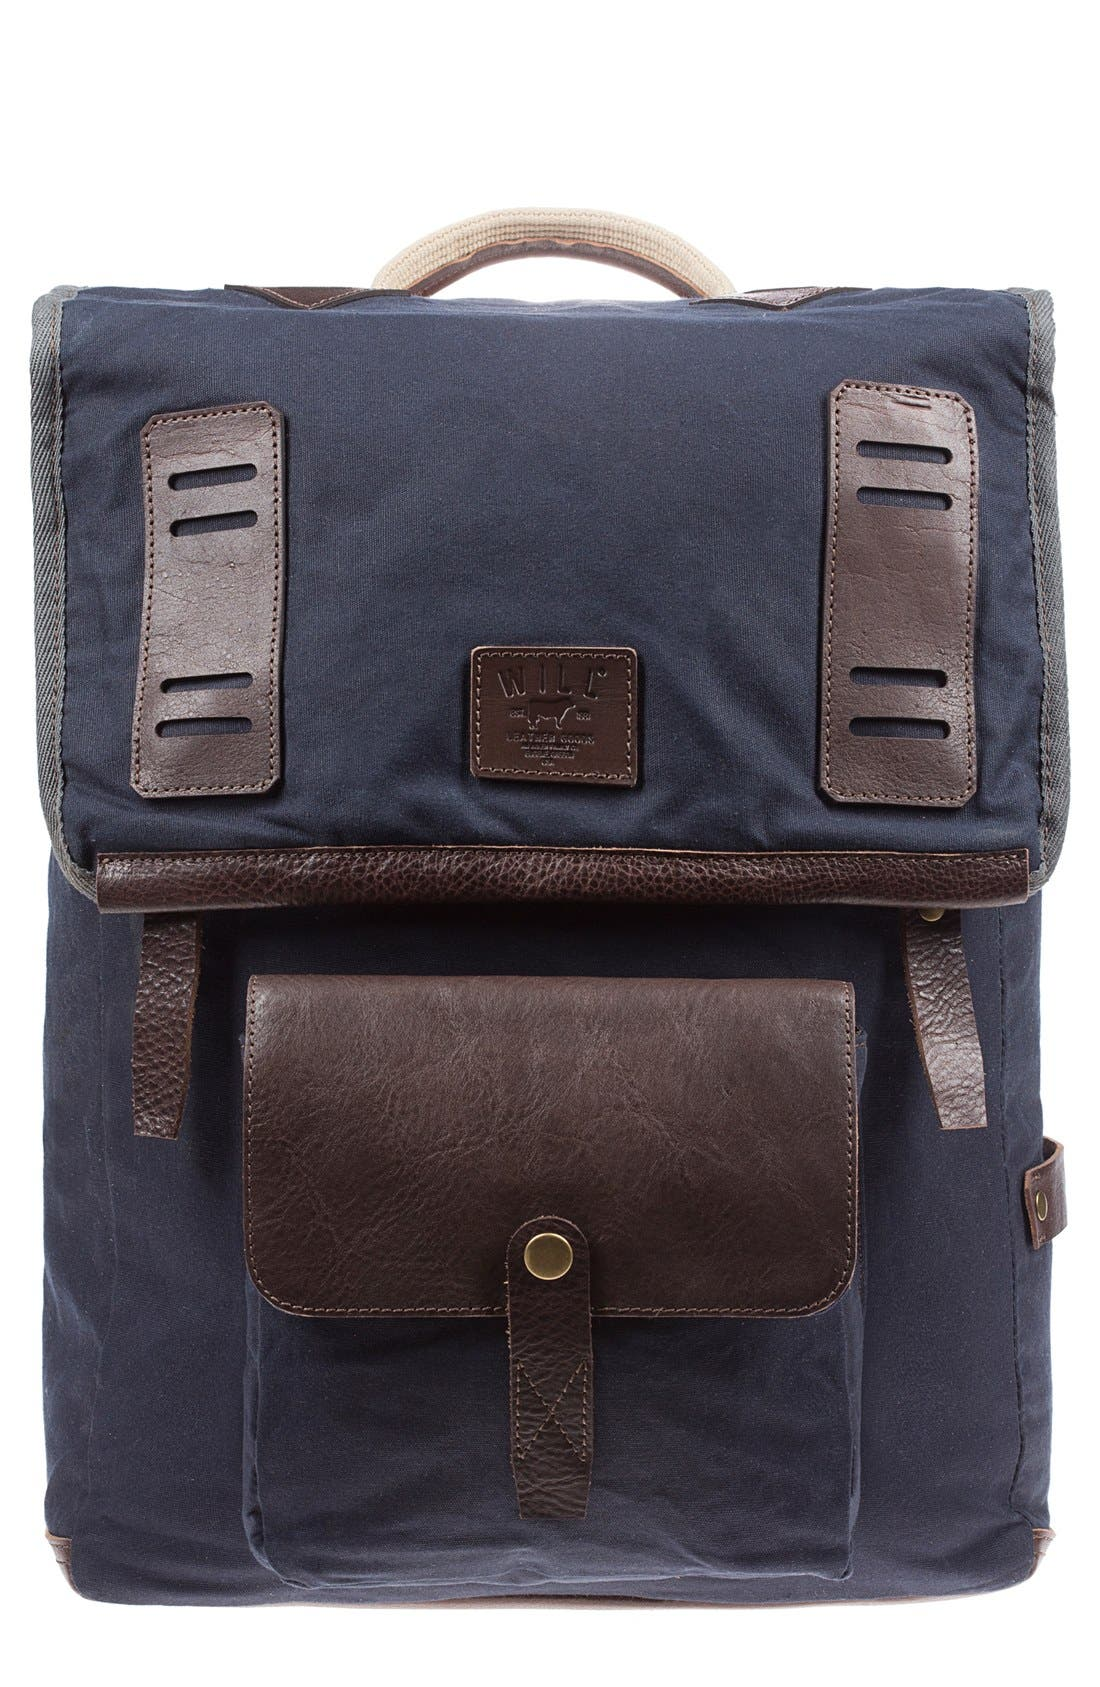 Will Leather Goods 'Mt. Hood' Backpack